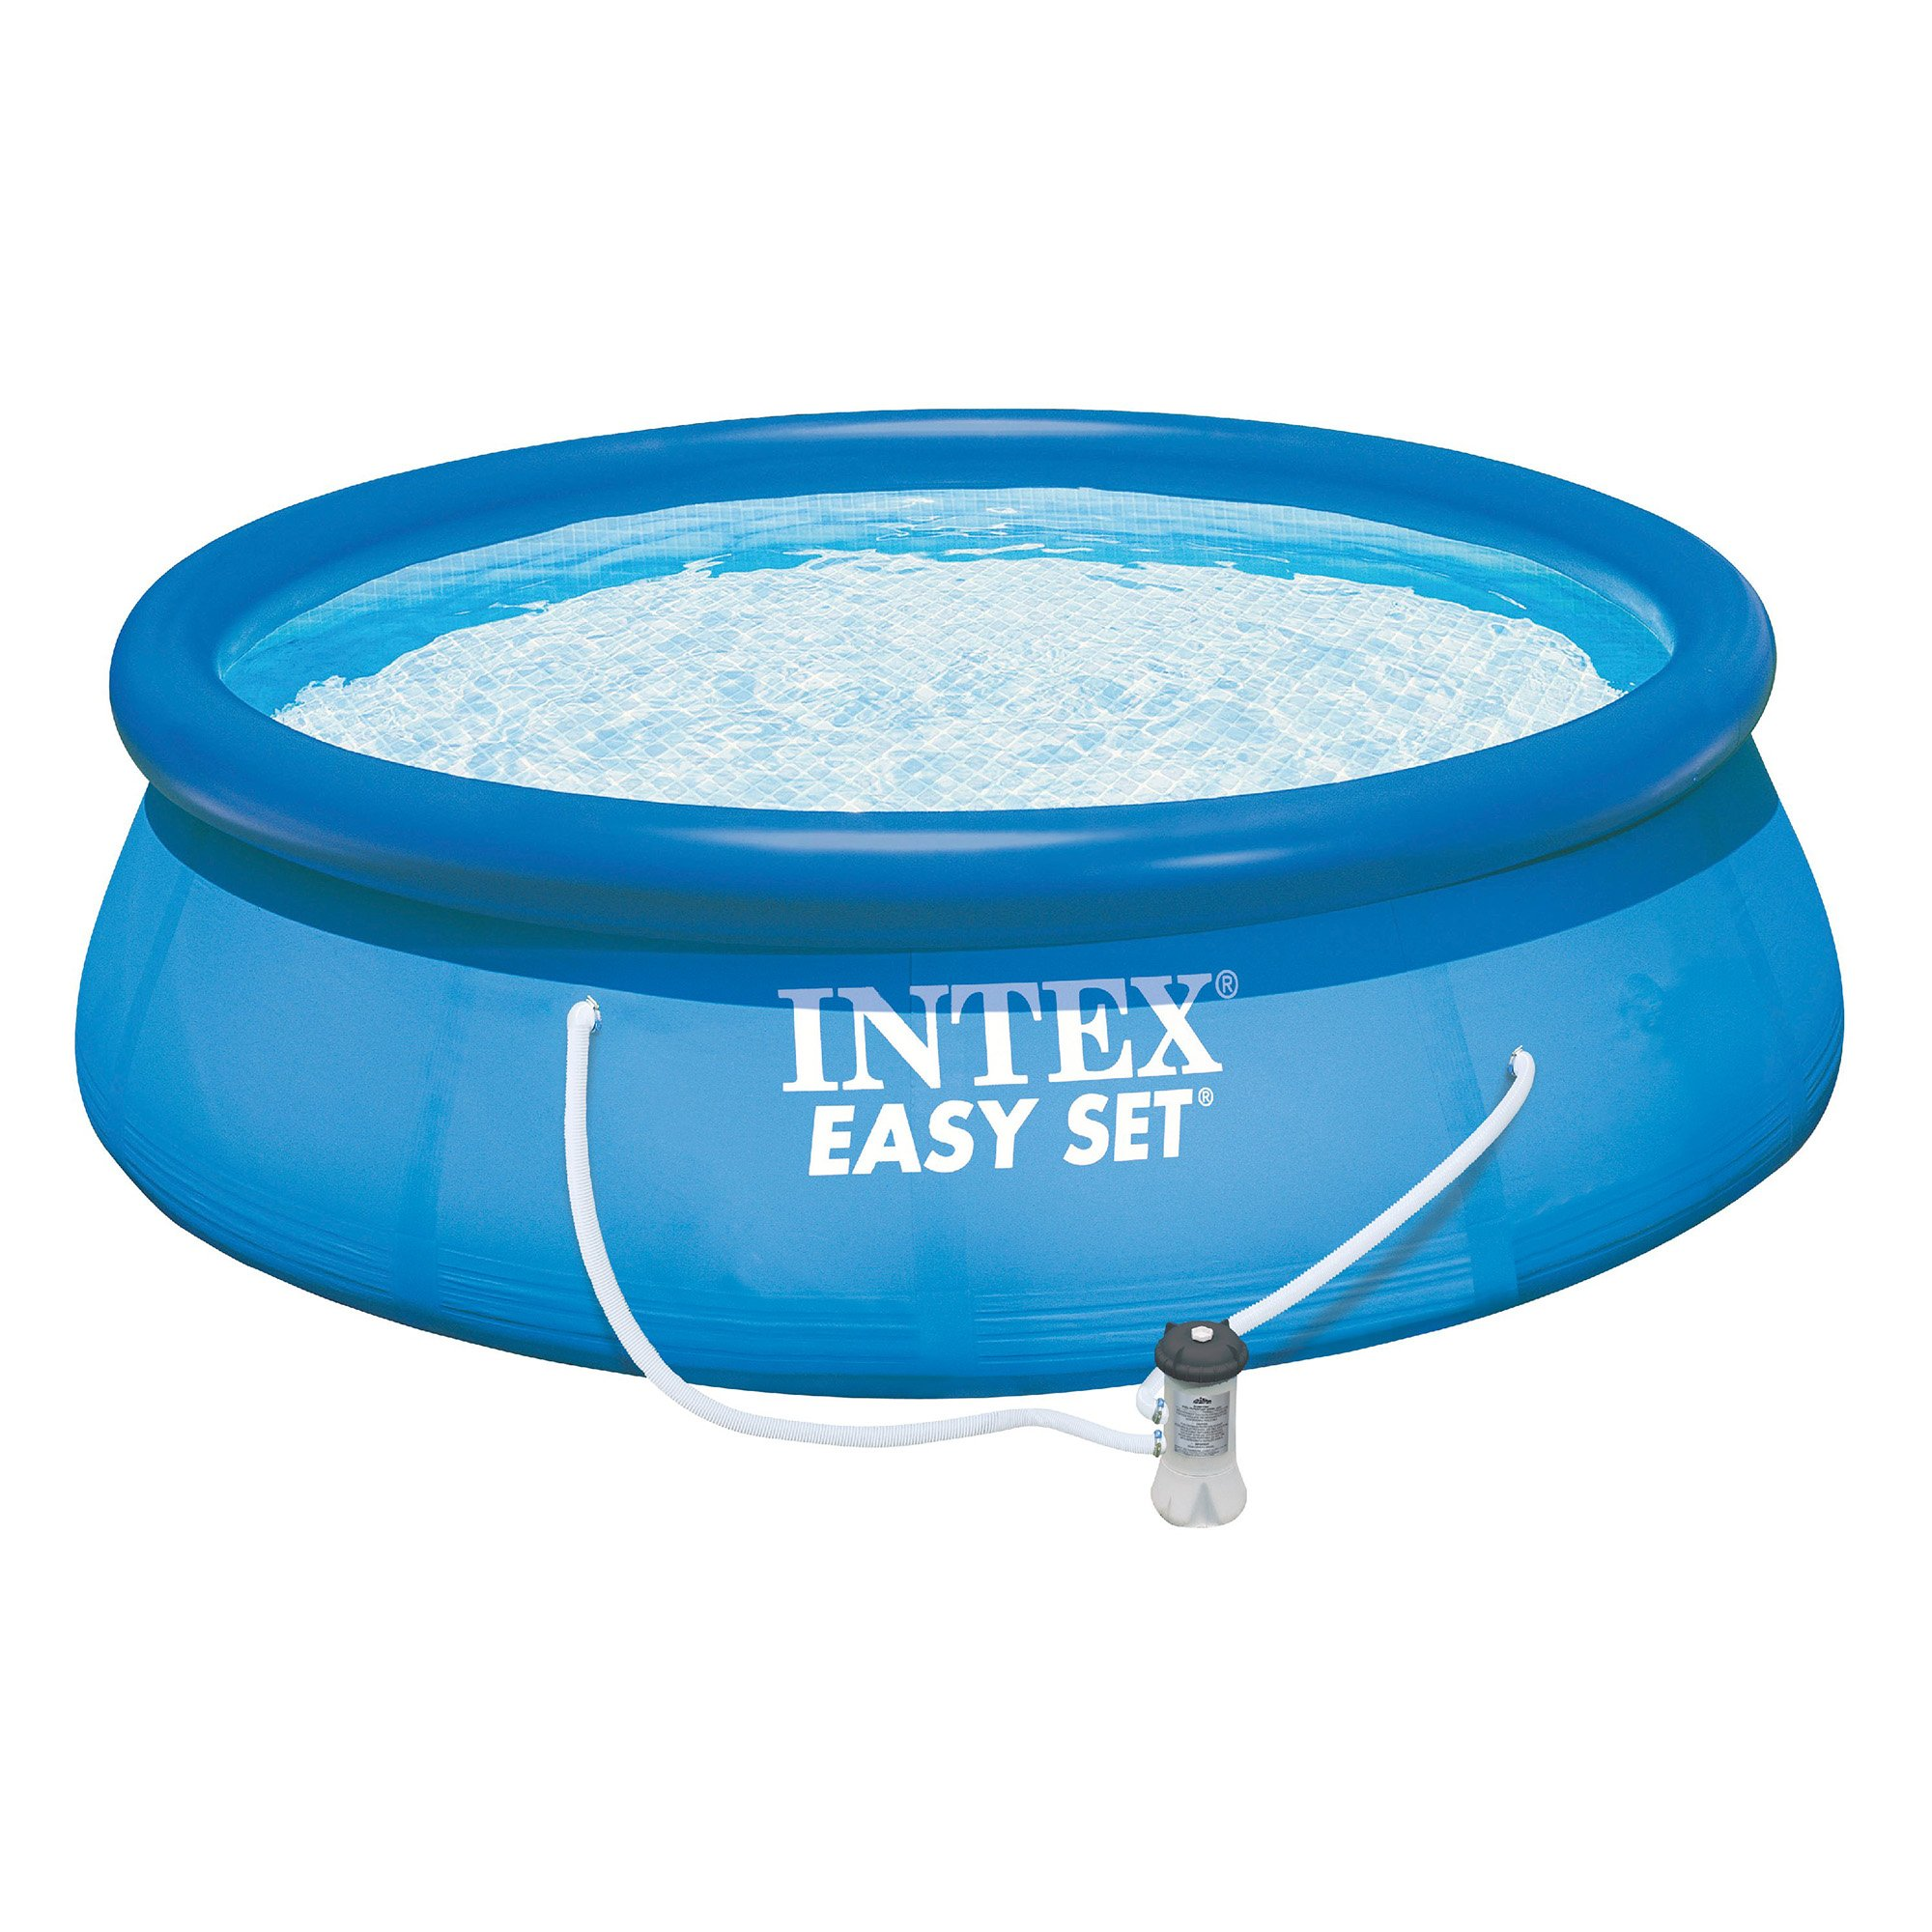 Intex 15ft X 48in Easy Set Pool Set with Filter Pump, Ladder, Ground Cloth & Pool Cover by Intex (Image #2)